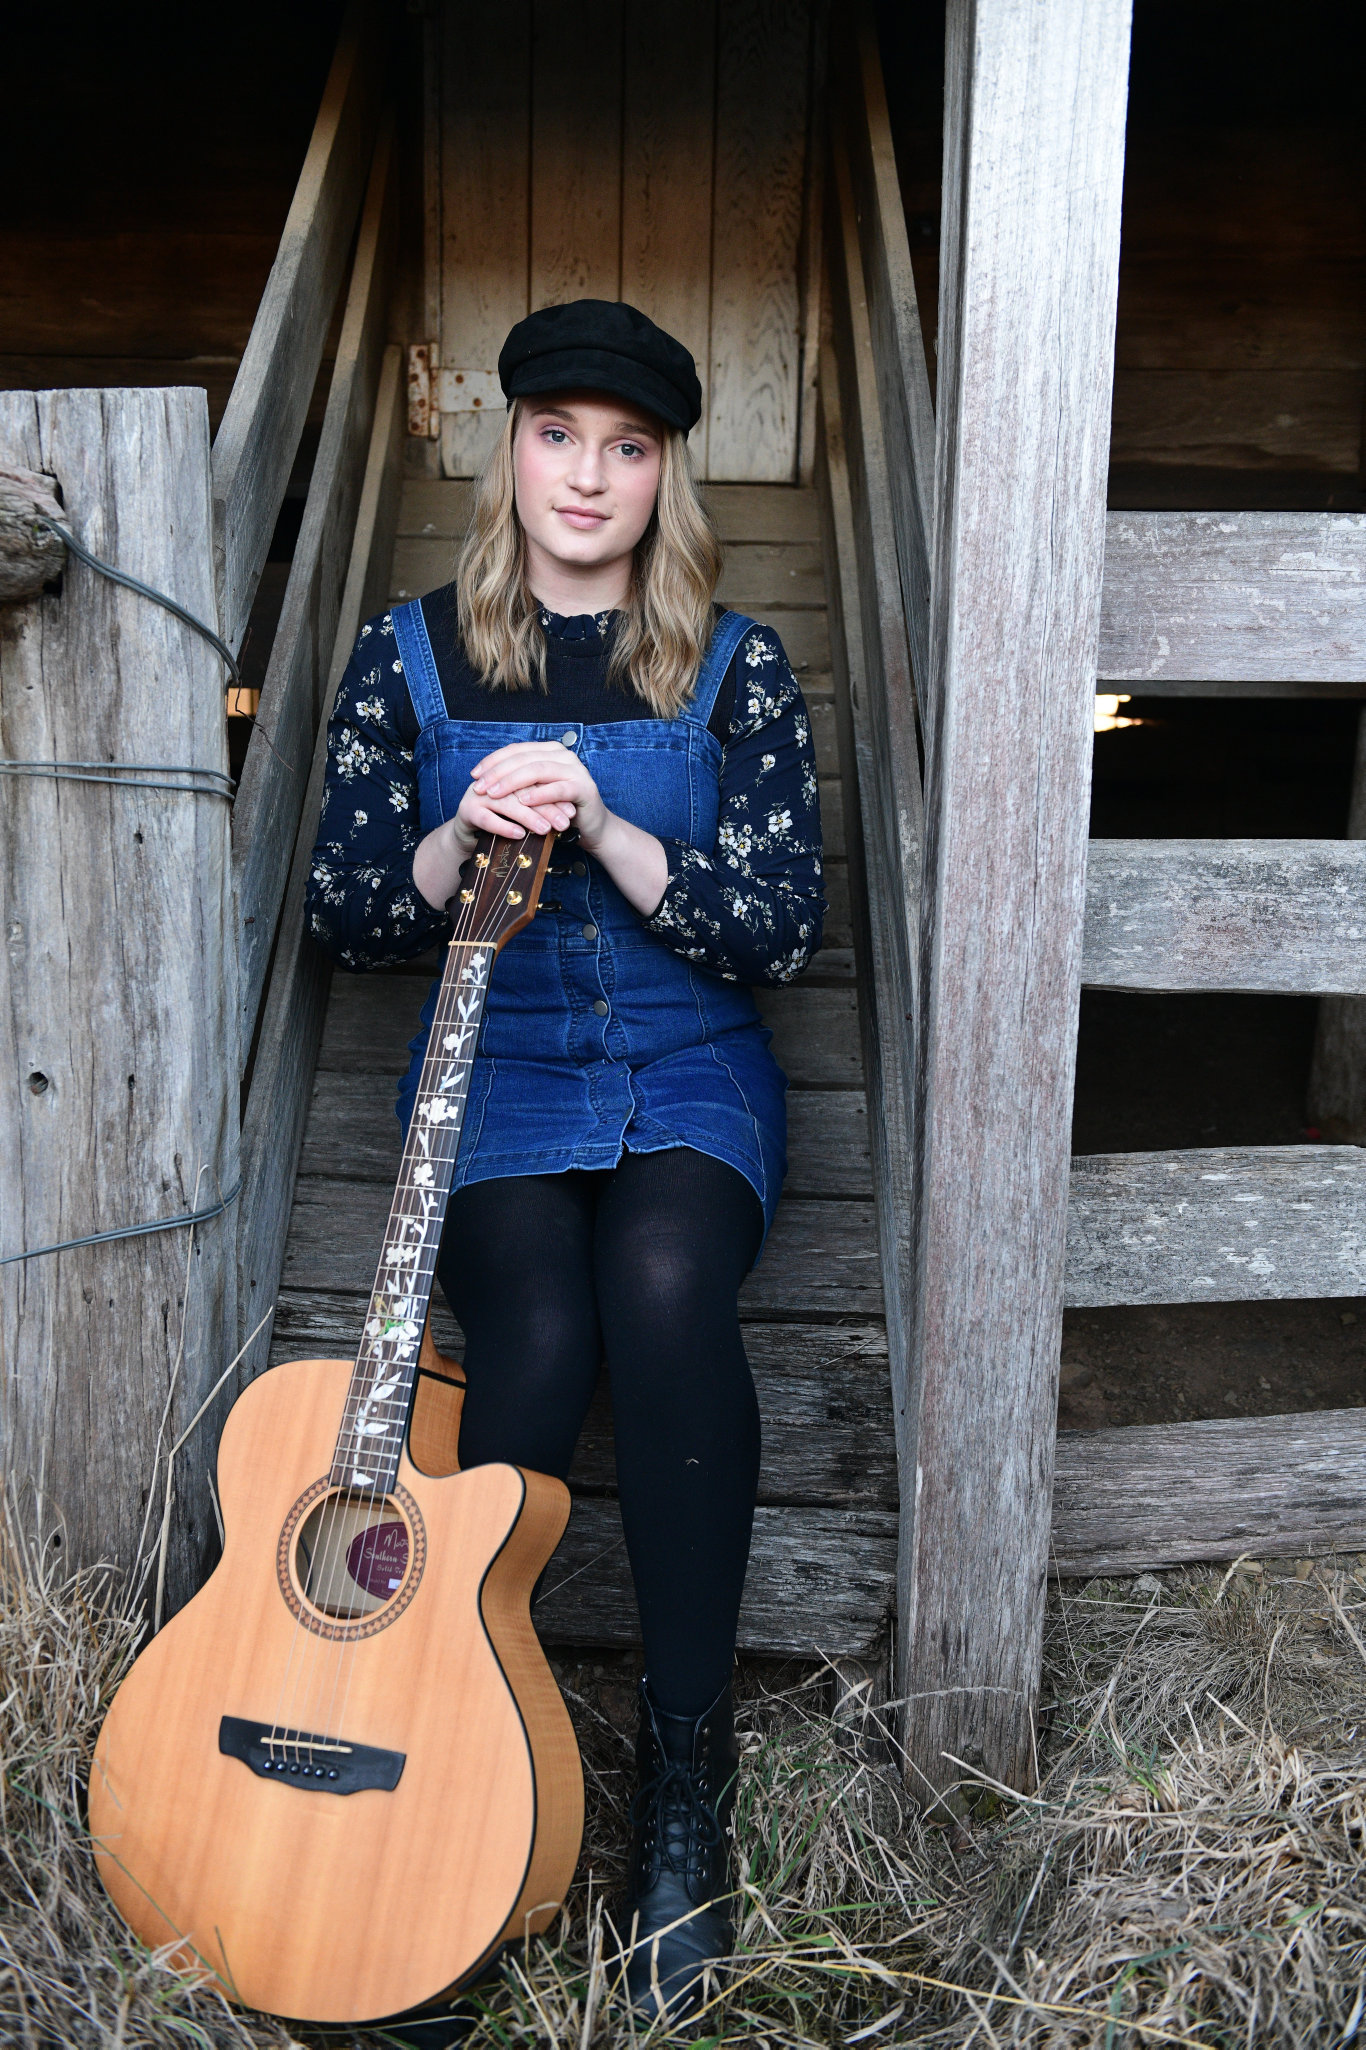 TELLING STORIES: Highfields singer-songwriter Sophie Volp will make her debut at the Tamworth Country Music Festival at the age of 16.